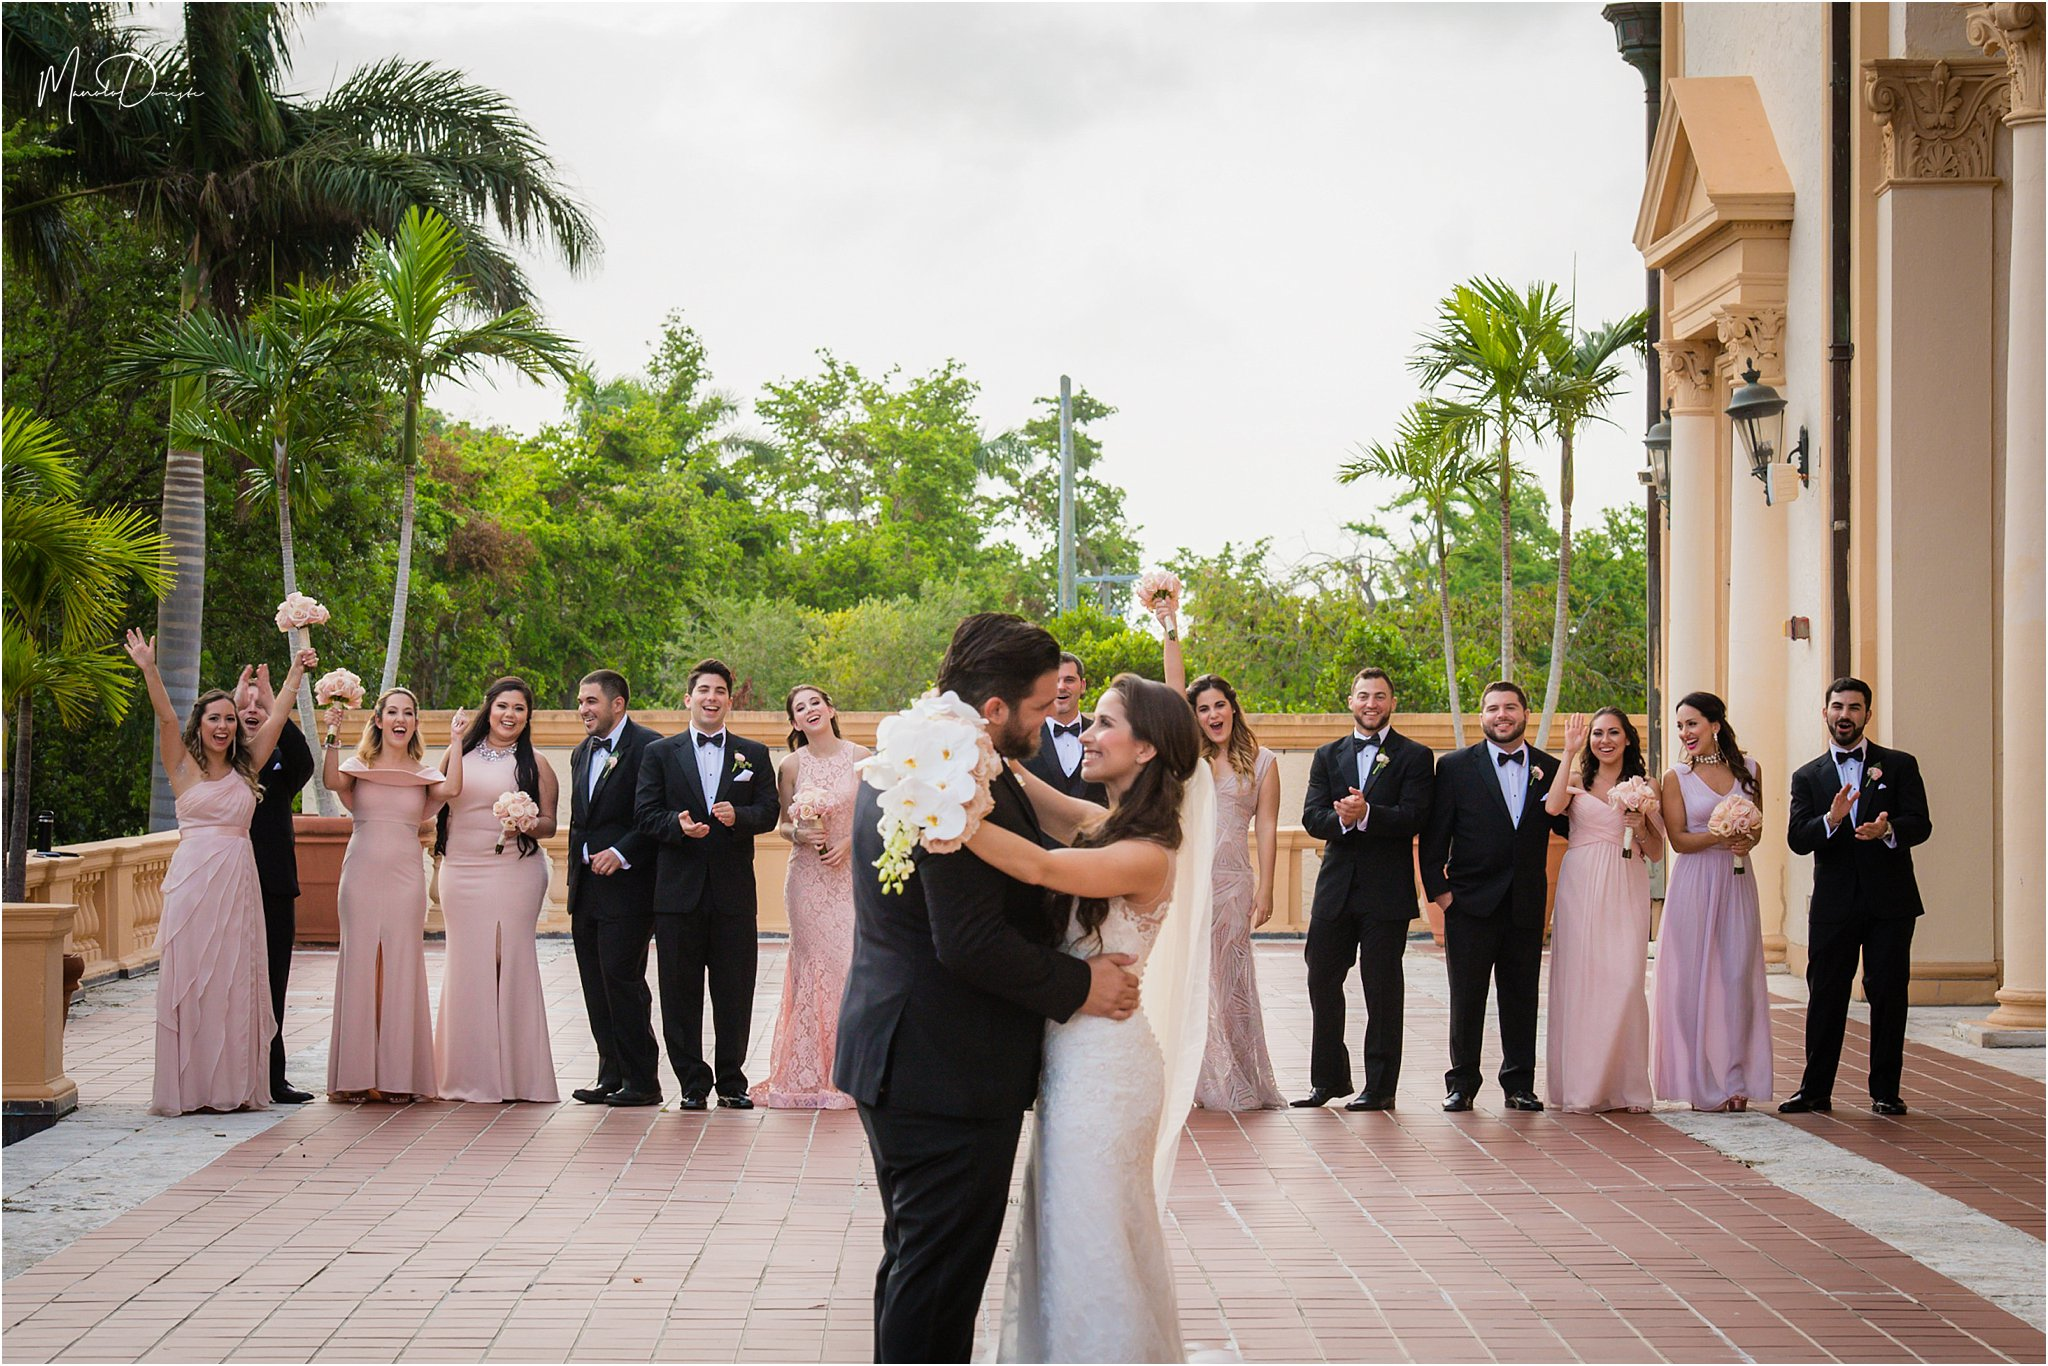 0167_ManoloDoreste_InFocusStudios_Wedding_Family_Photography_Miami_MiamiPhotographer.jpg